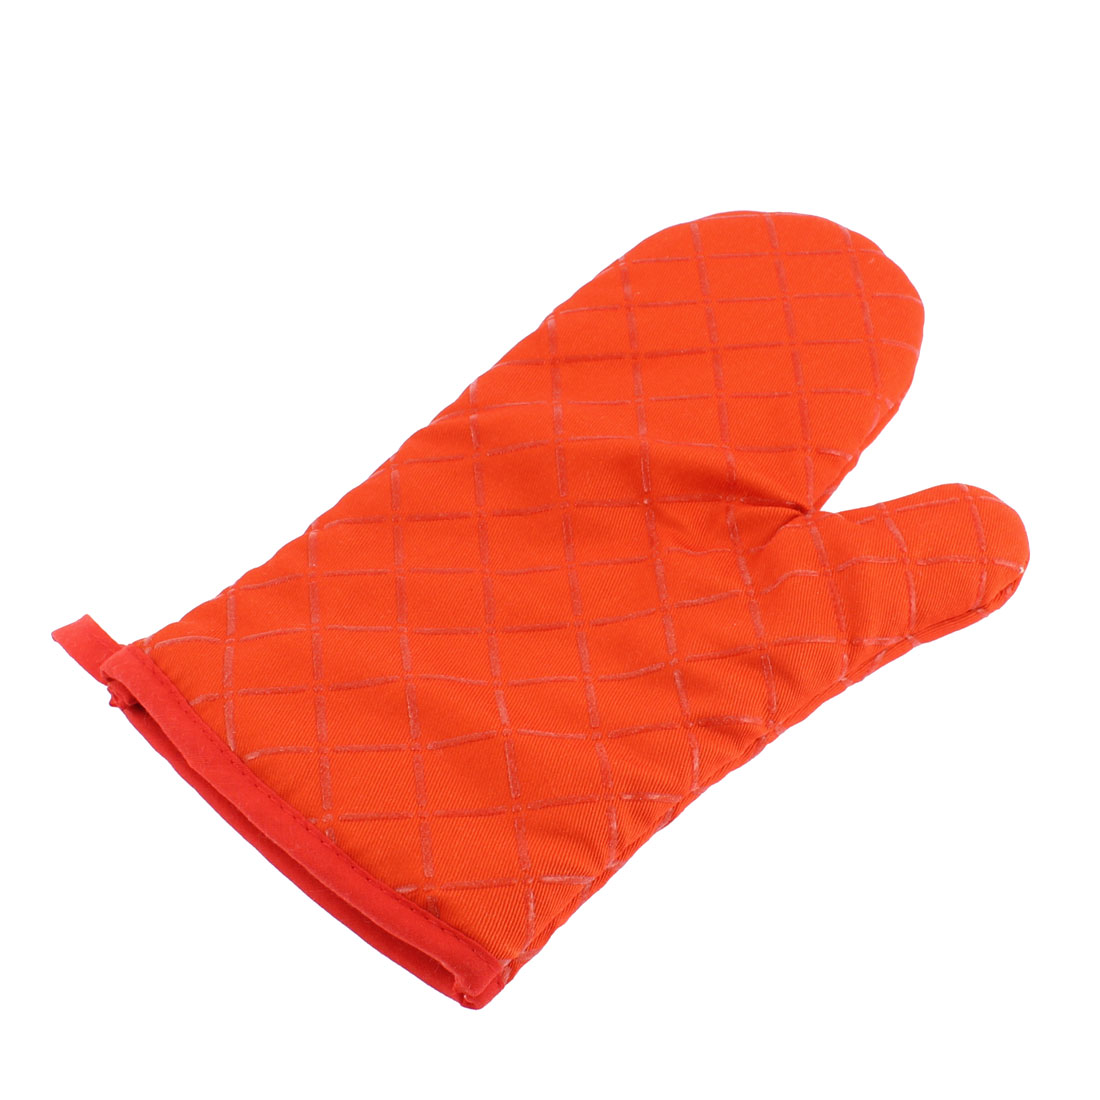 Cross Pattern Non Slip Heat Resistance Oven Mitt Glove Orange Red